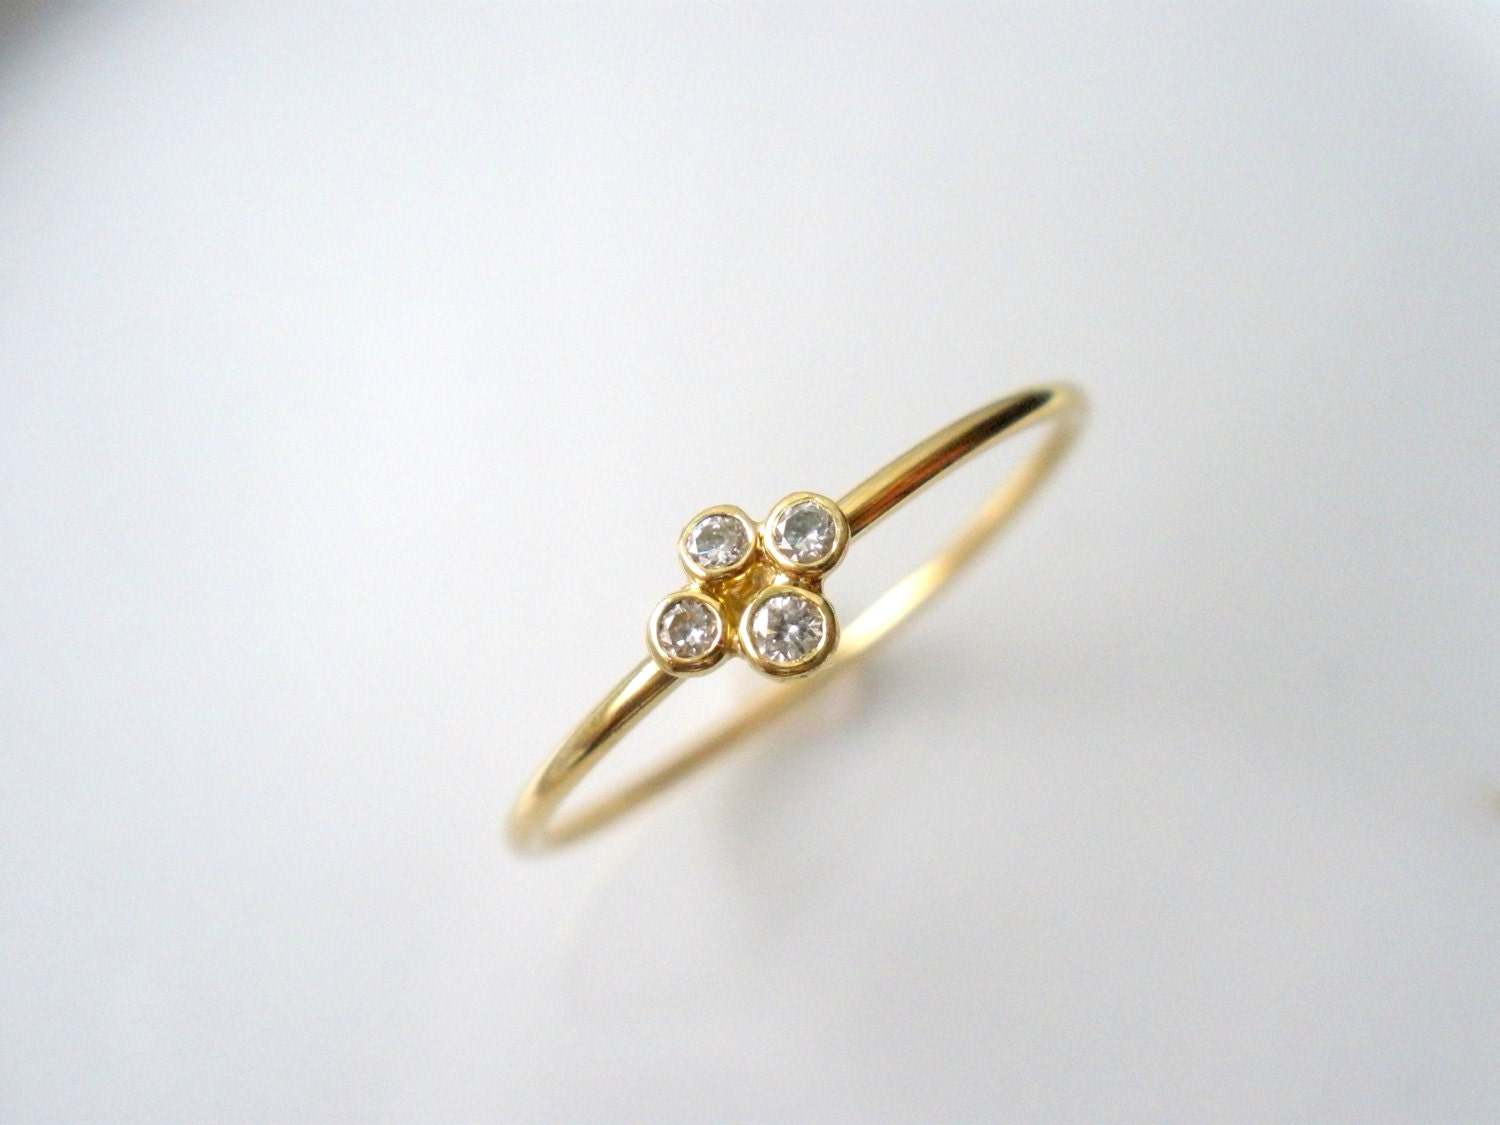 Clover diamond ring 18k gold tiny ring right hand ring for Tiny wedding ring